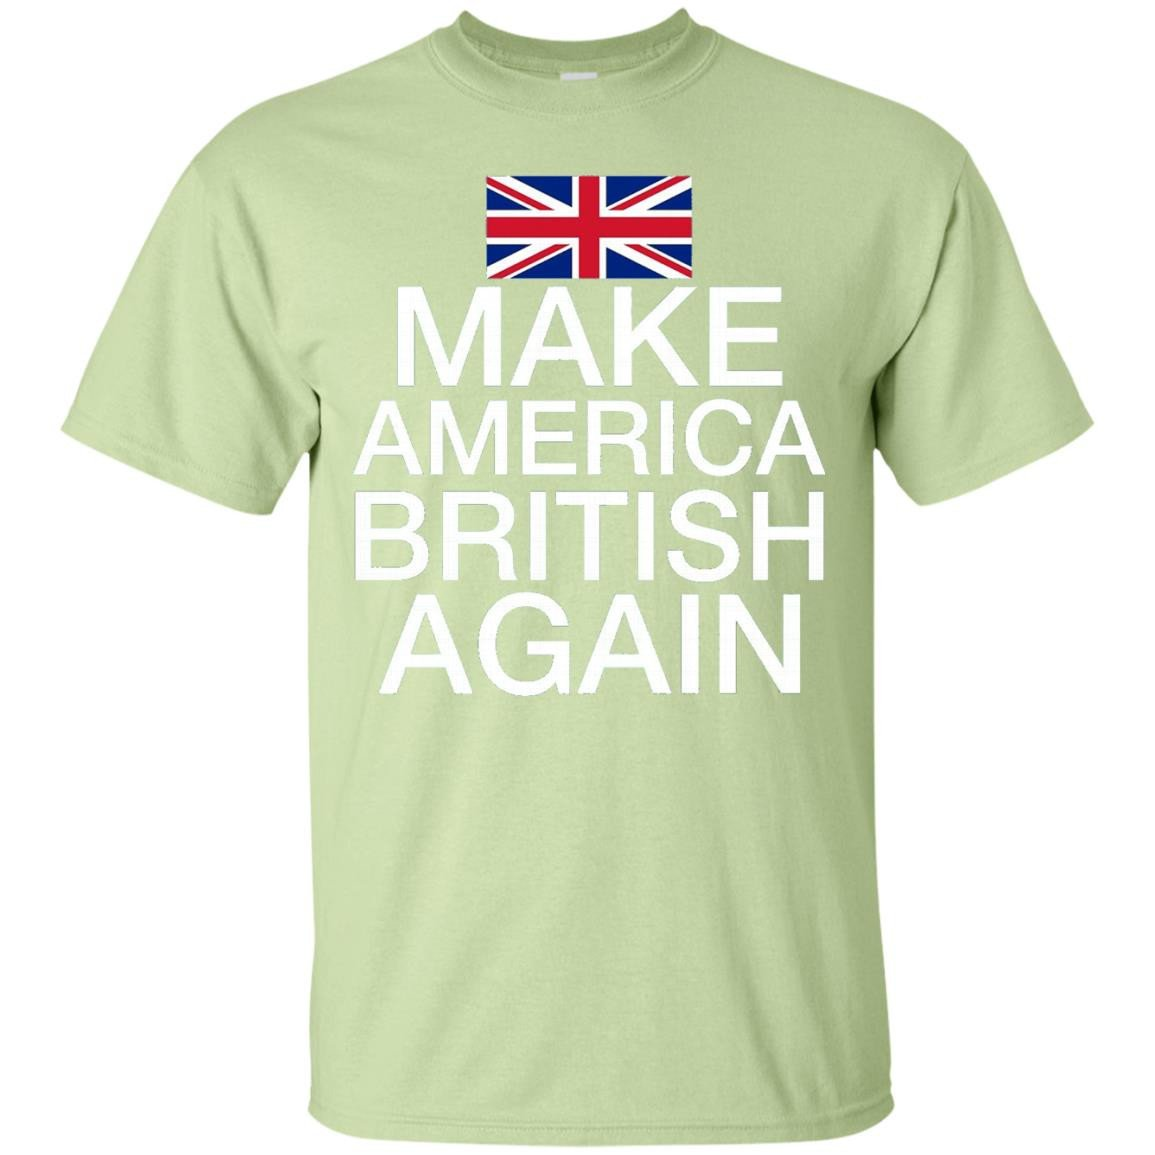 Make America British Again T-Shirt